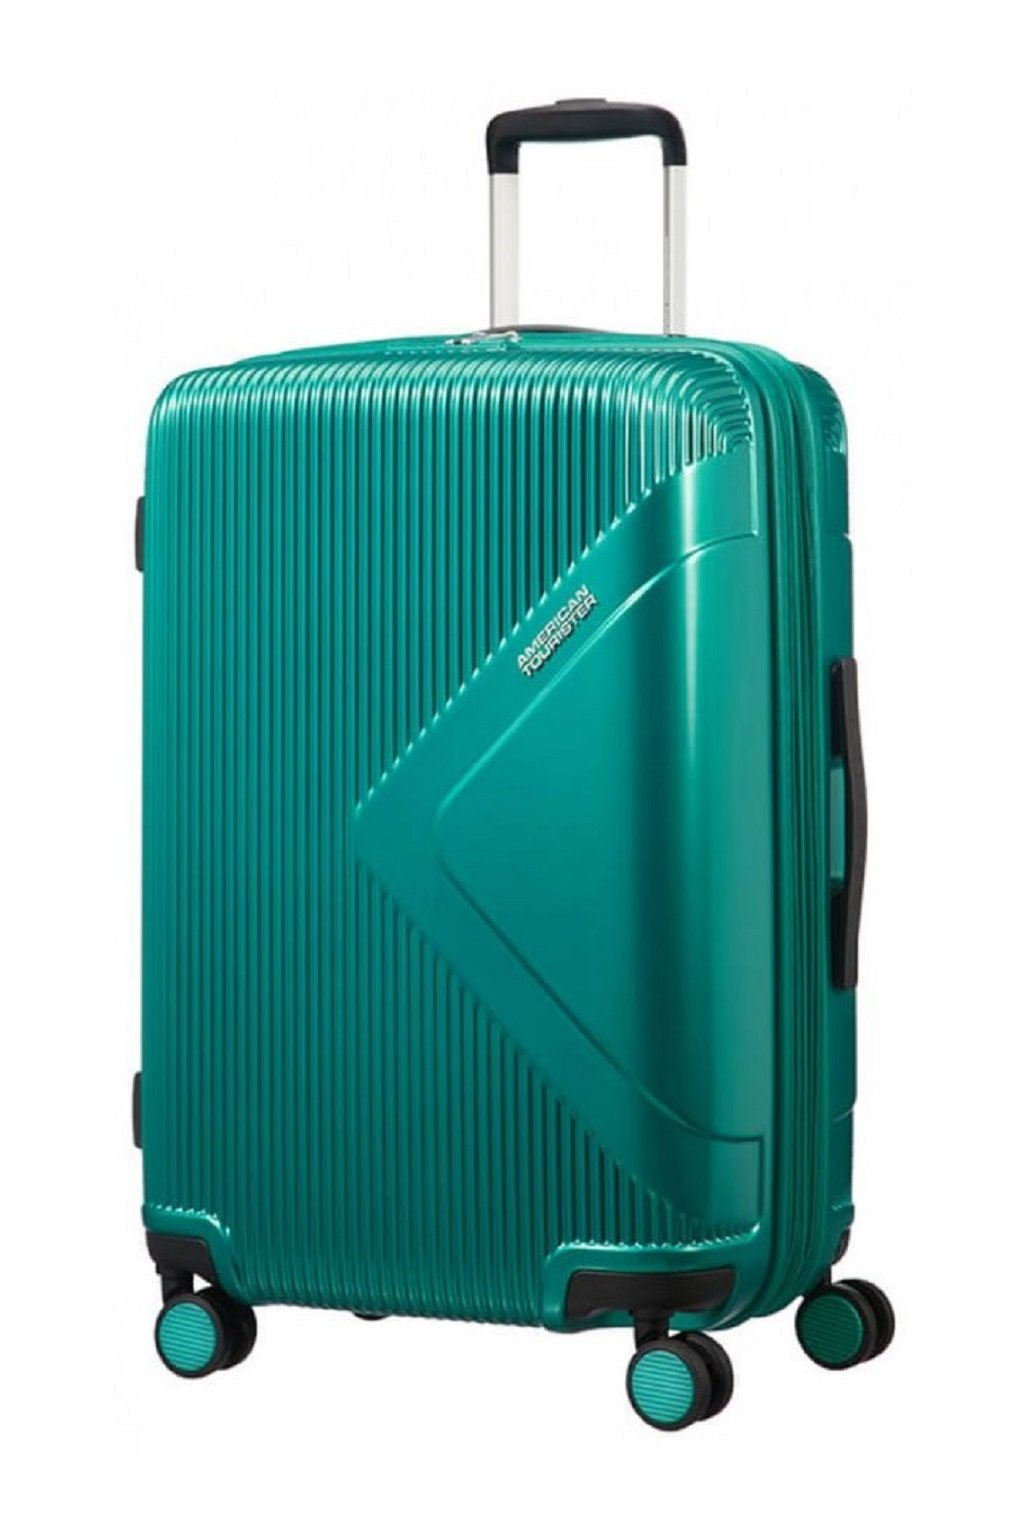 kufrland americantourister modern dream at 69cm 7081 liter expandable emerald green